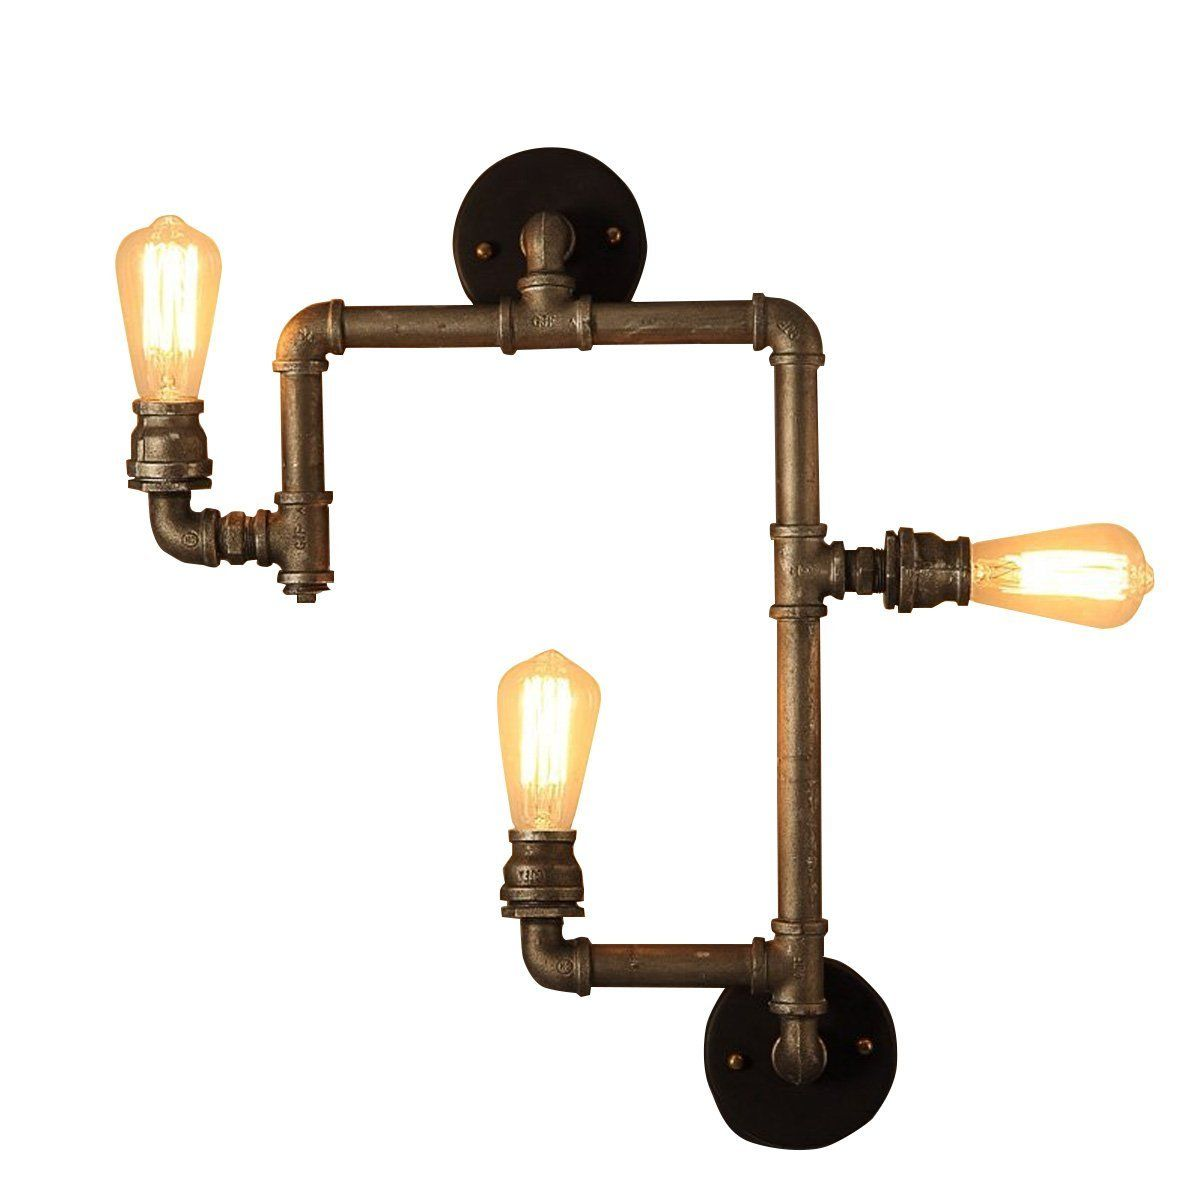 homestia industrial 3 lights retro wasserrohr wandleuchtens wandlampe bronze. Black Bedroom Furniture Sets. Home Design Ideas